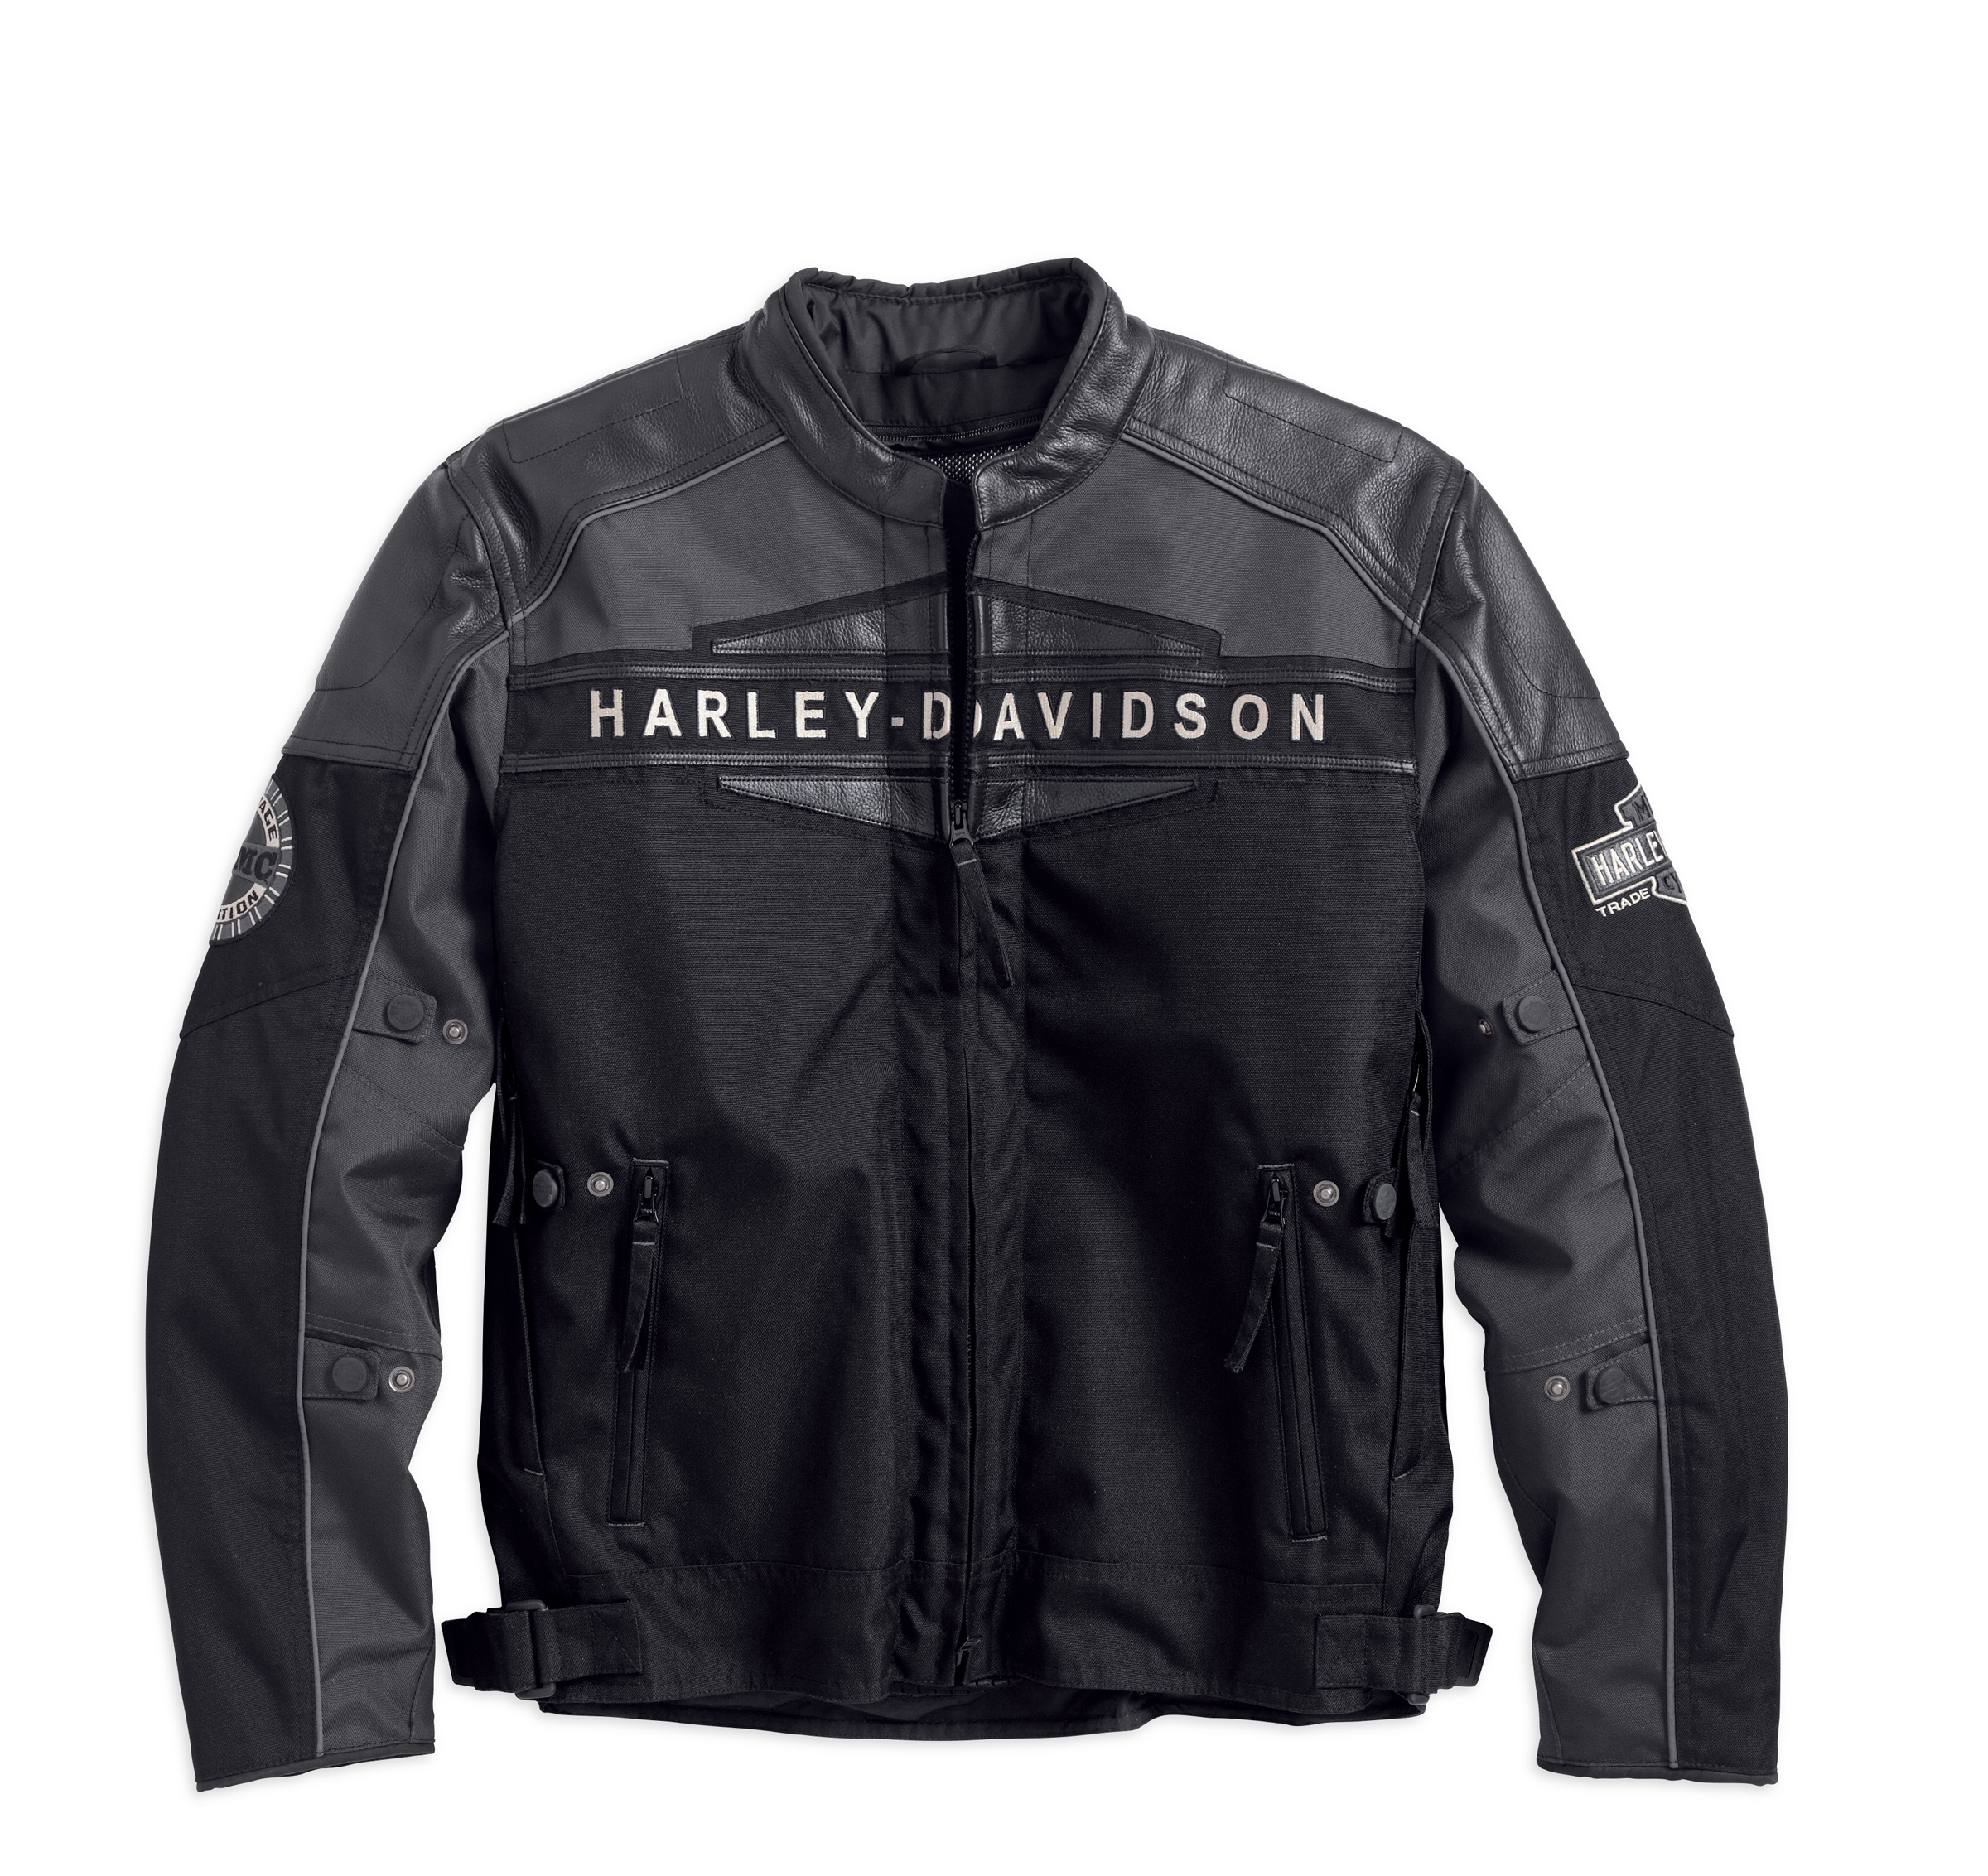 jacket harley davidson jackets motorcycle liner highland reflective thermal technology mens announces four functional xl motorcycles 2040 parts front